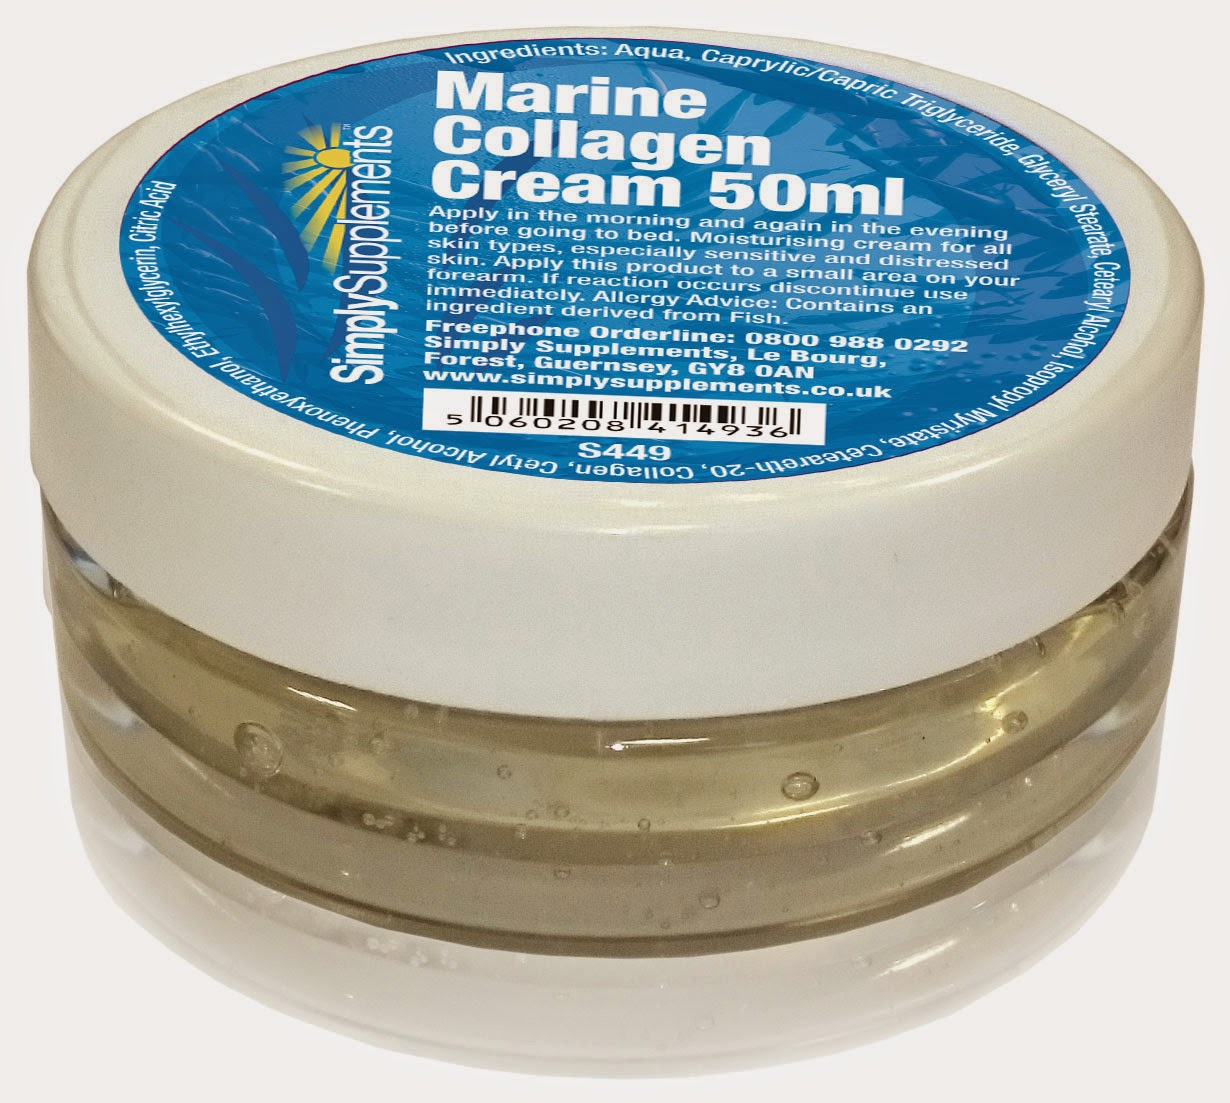 Marine Collagen cream by Simply Supplements